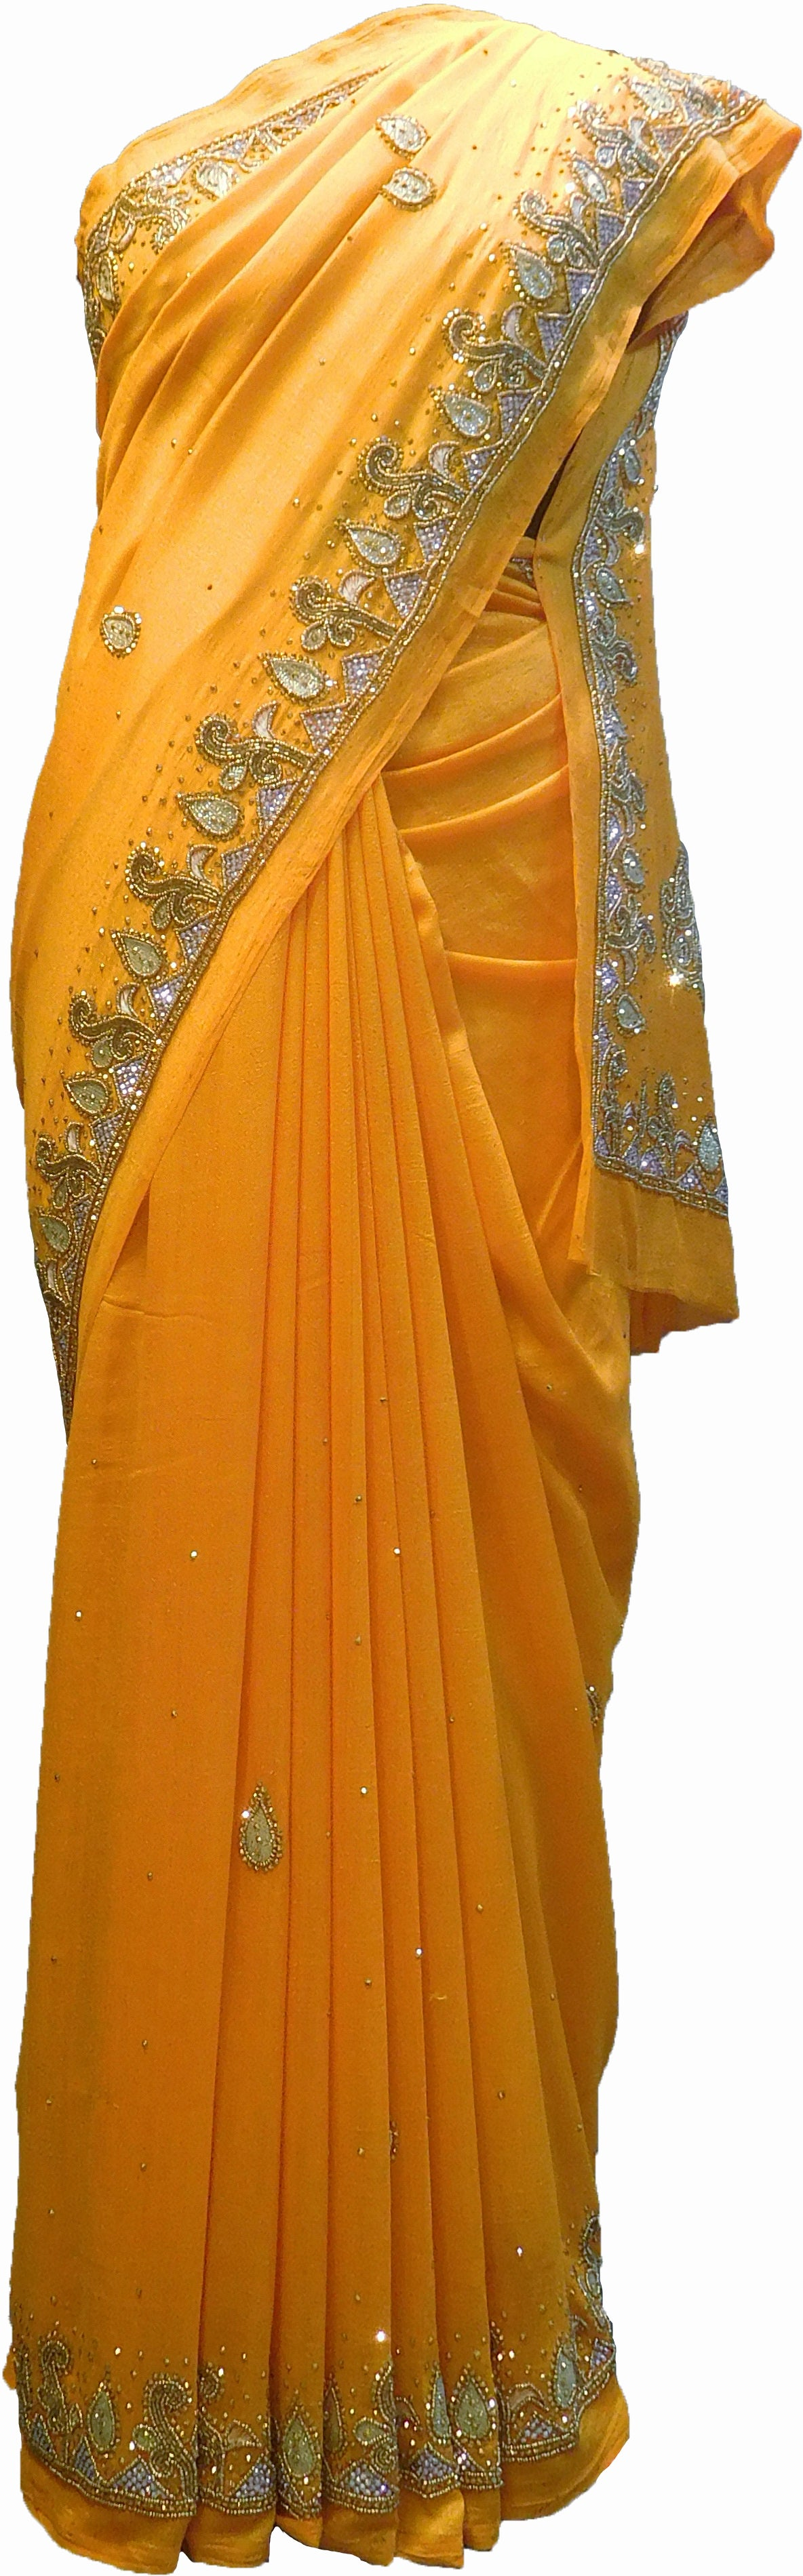 SMSAREE Yellow Designer Wedding Partywear Silk (Vichitra) Zari Cutdana Thread Beads & Stone Hand Embroidery Work Bridal Saree Sari With Blouse Piece F191